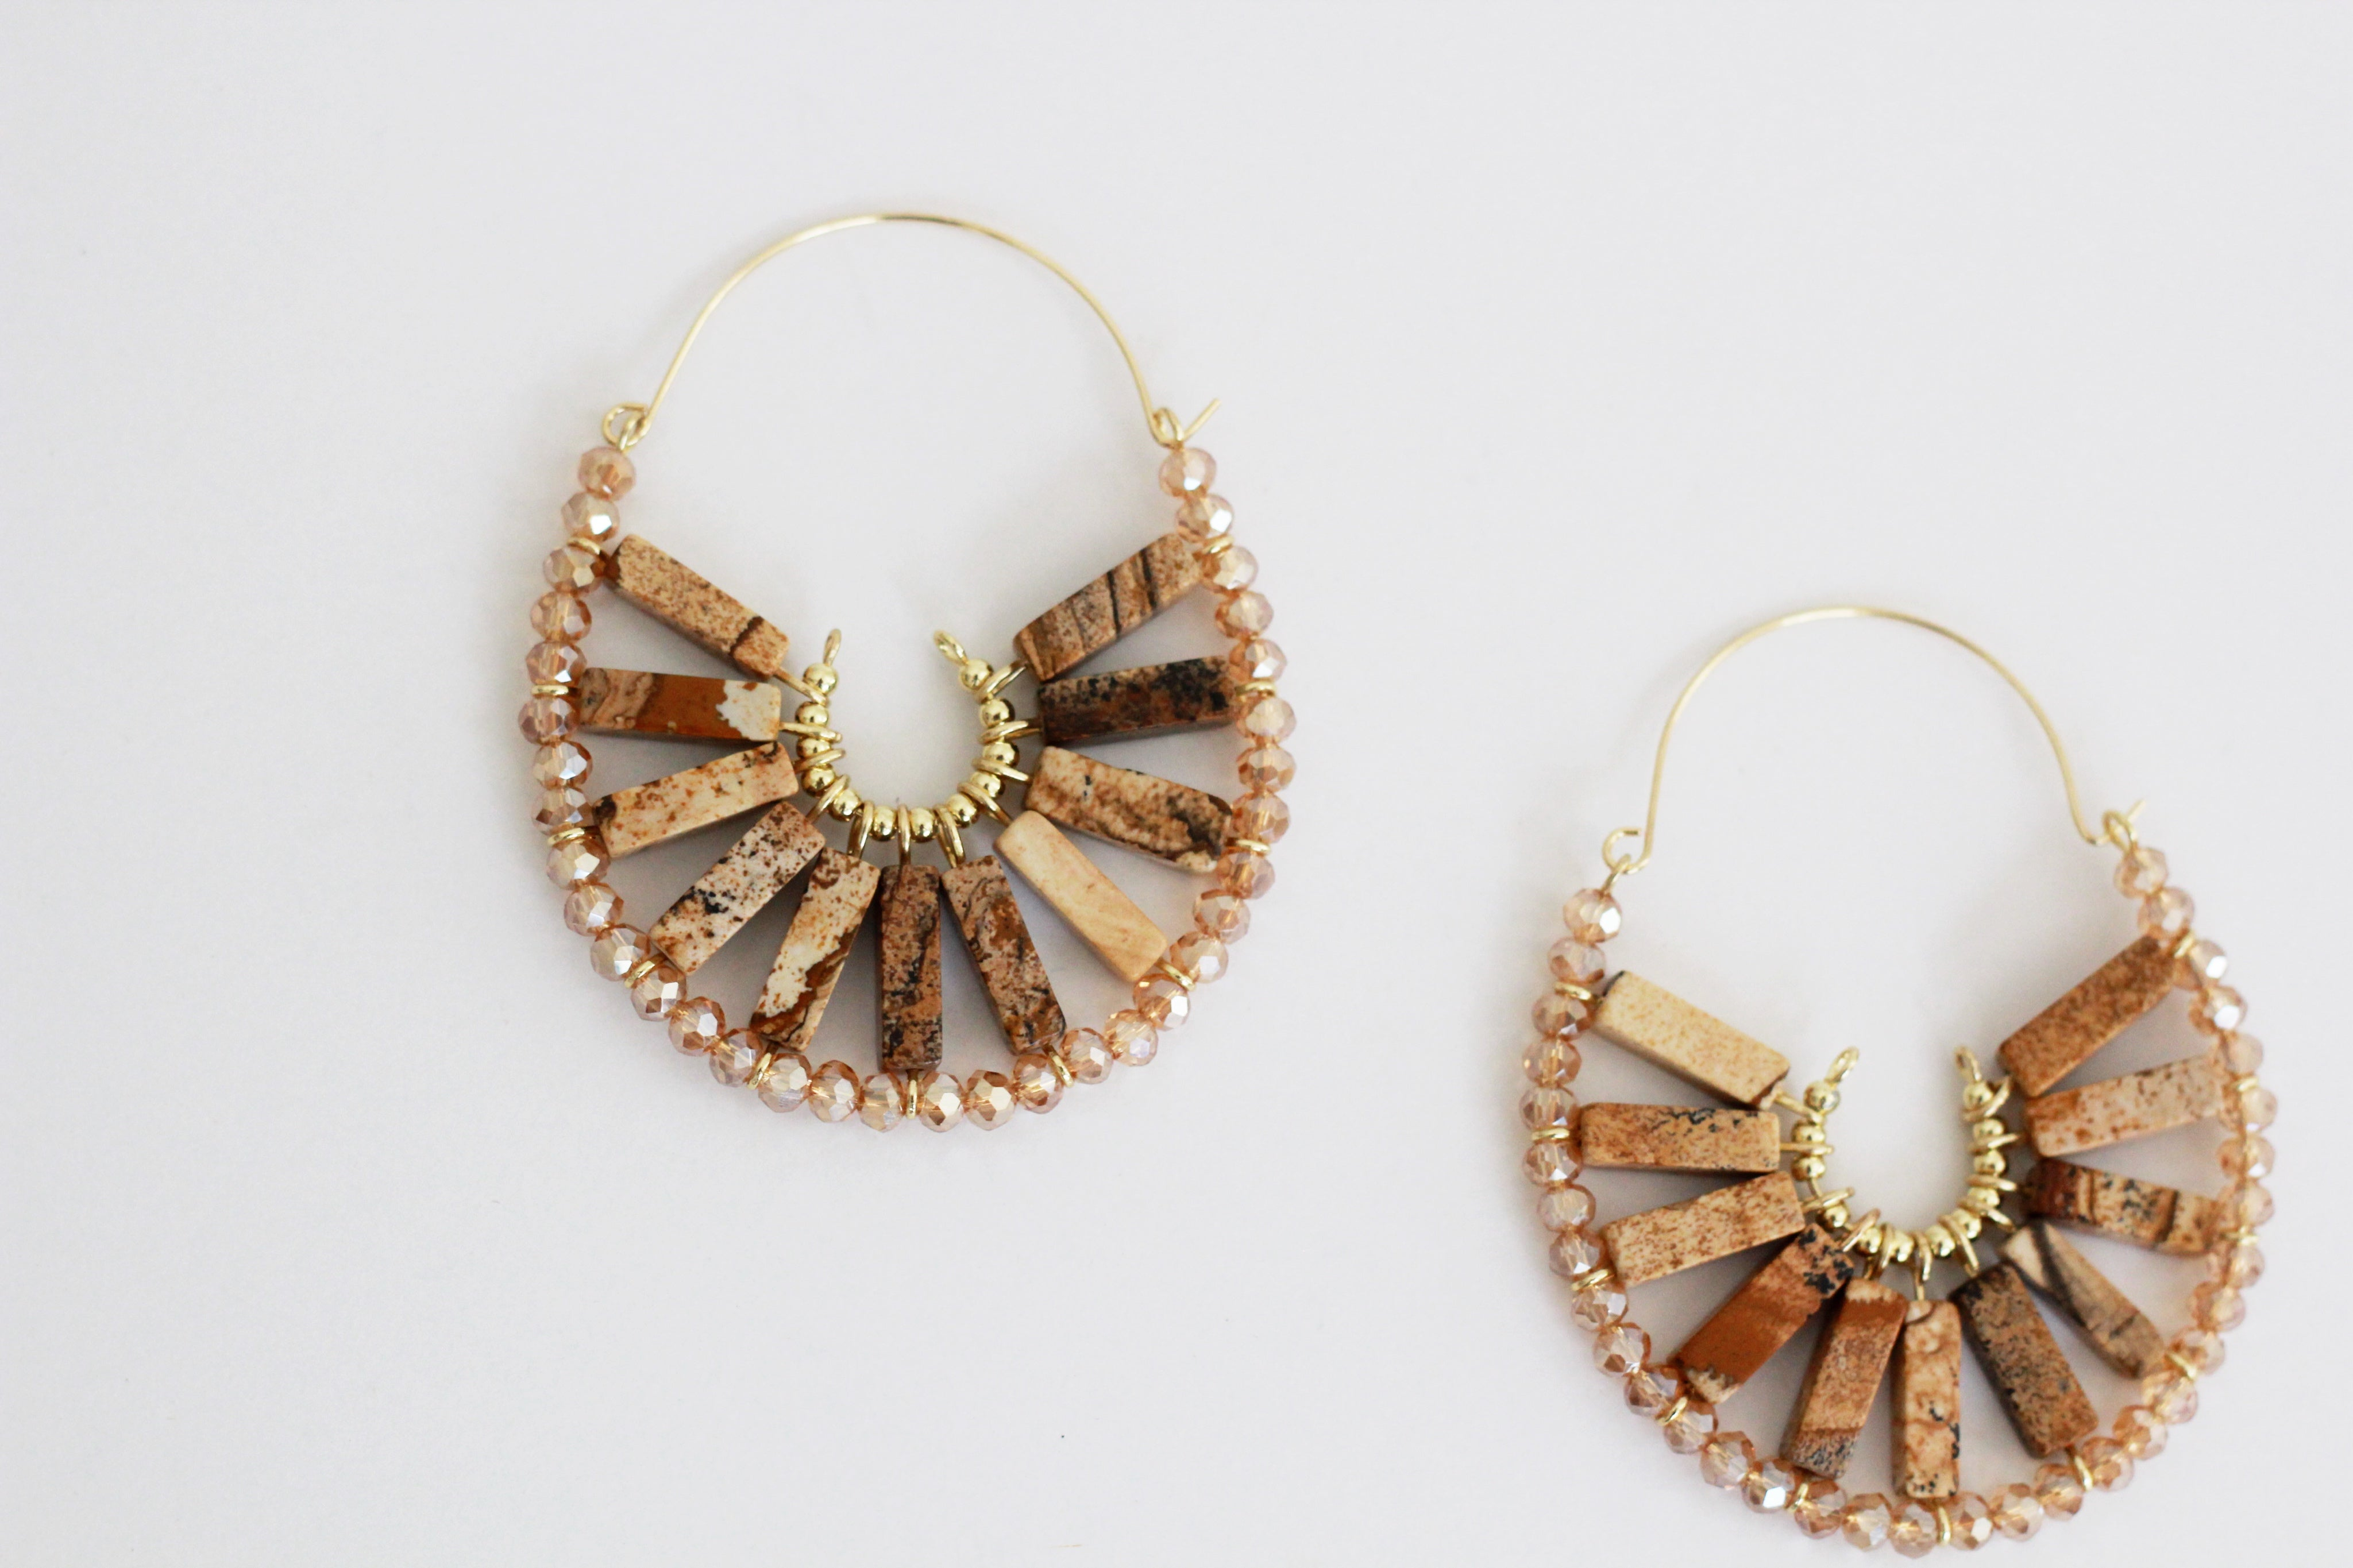 Adventurer Earrings